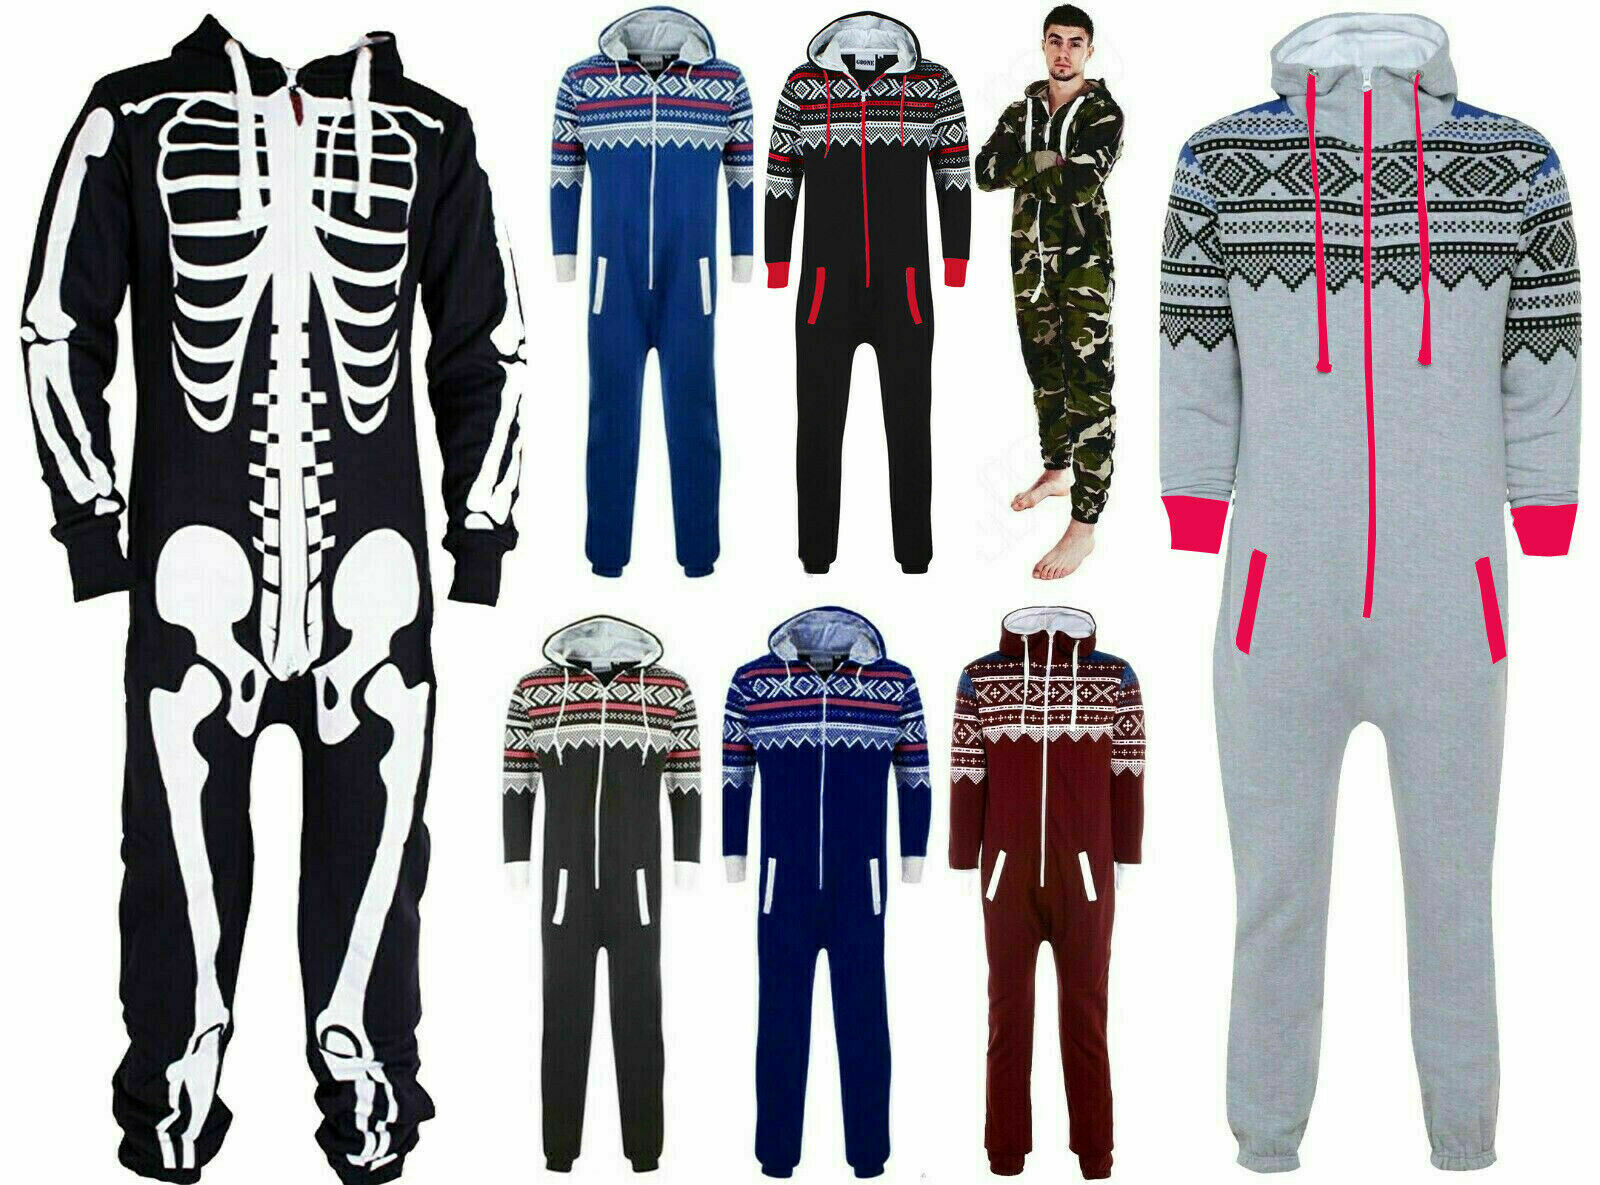 New with tag one piece Men/'s Camouflage Aztec All In One Jumpsuit Small to 5XL